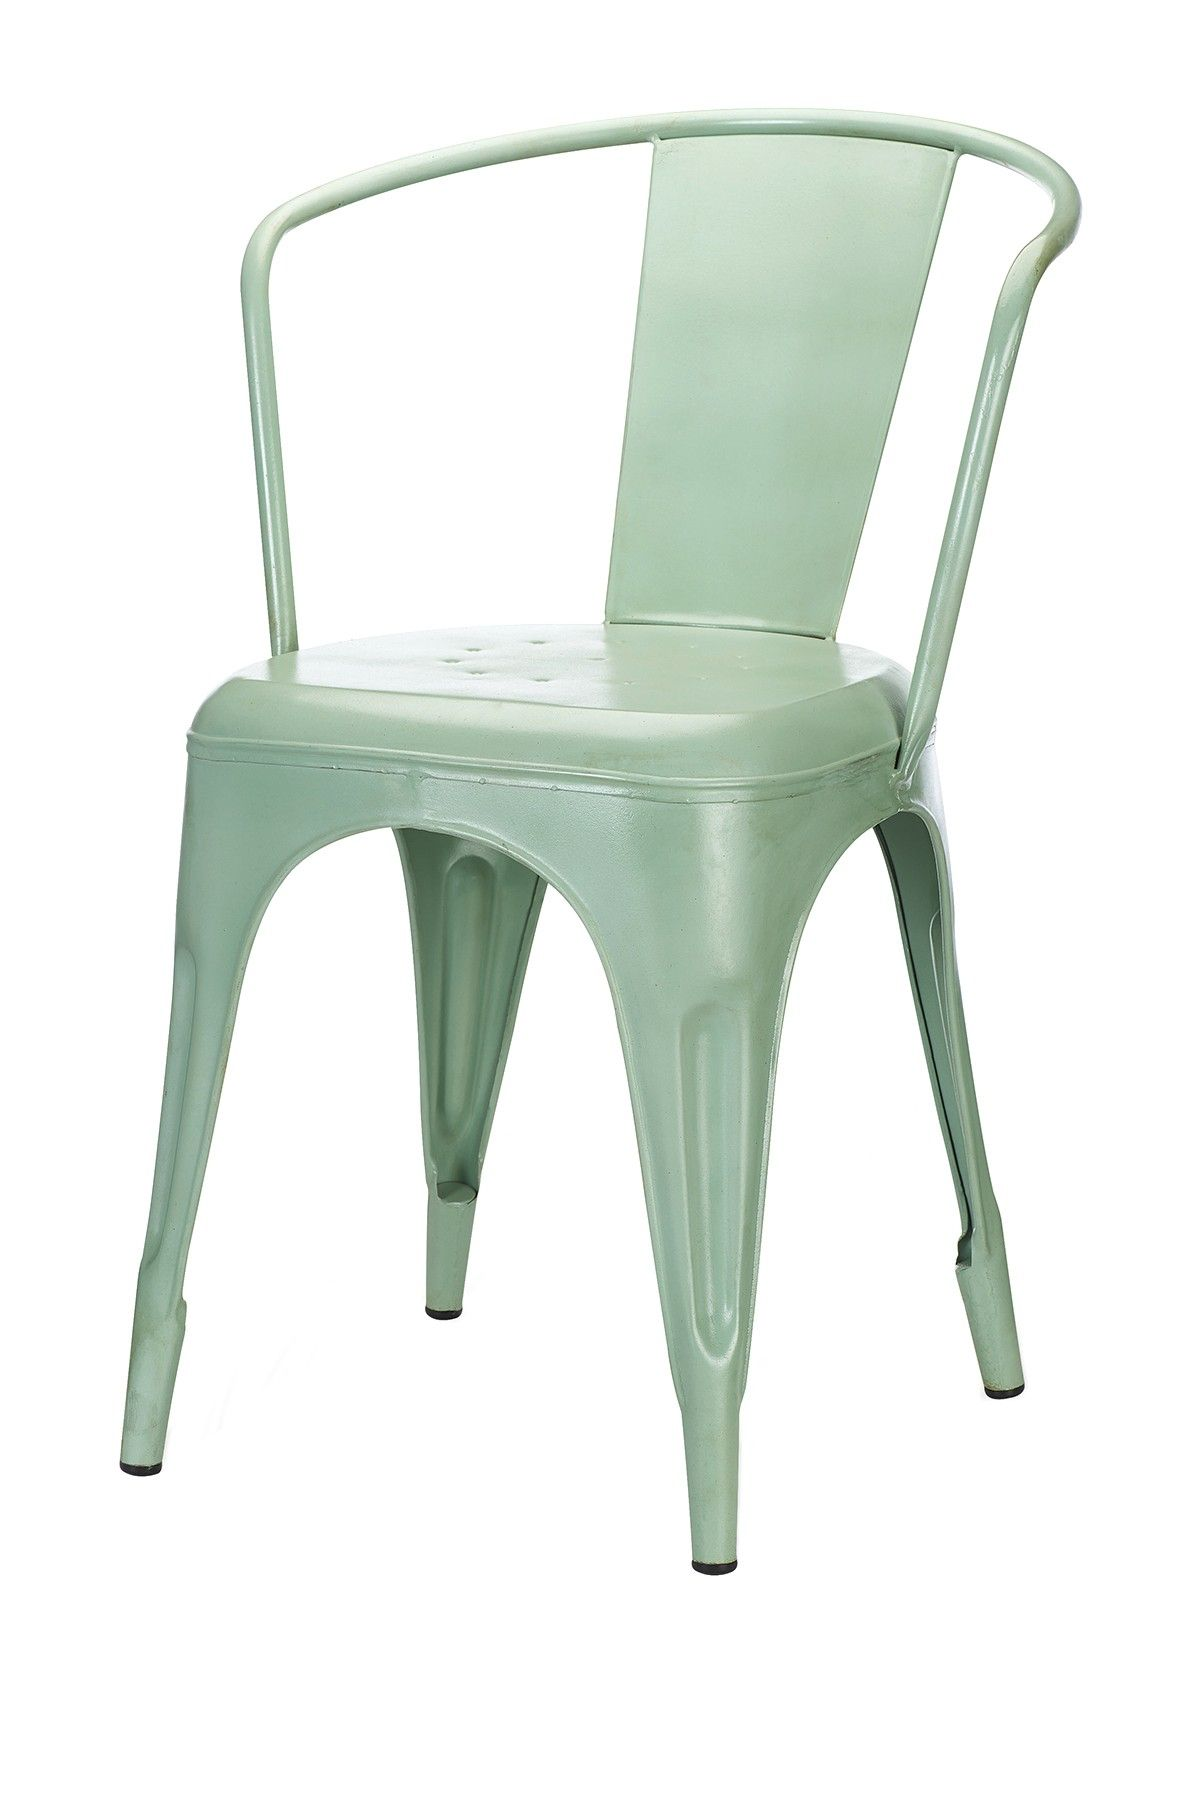 Genial Transpac Imports | Seafoam Utility Chair | Sponsored By Nordstrom Rack.